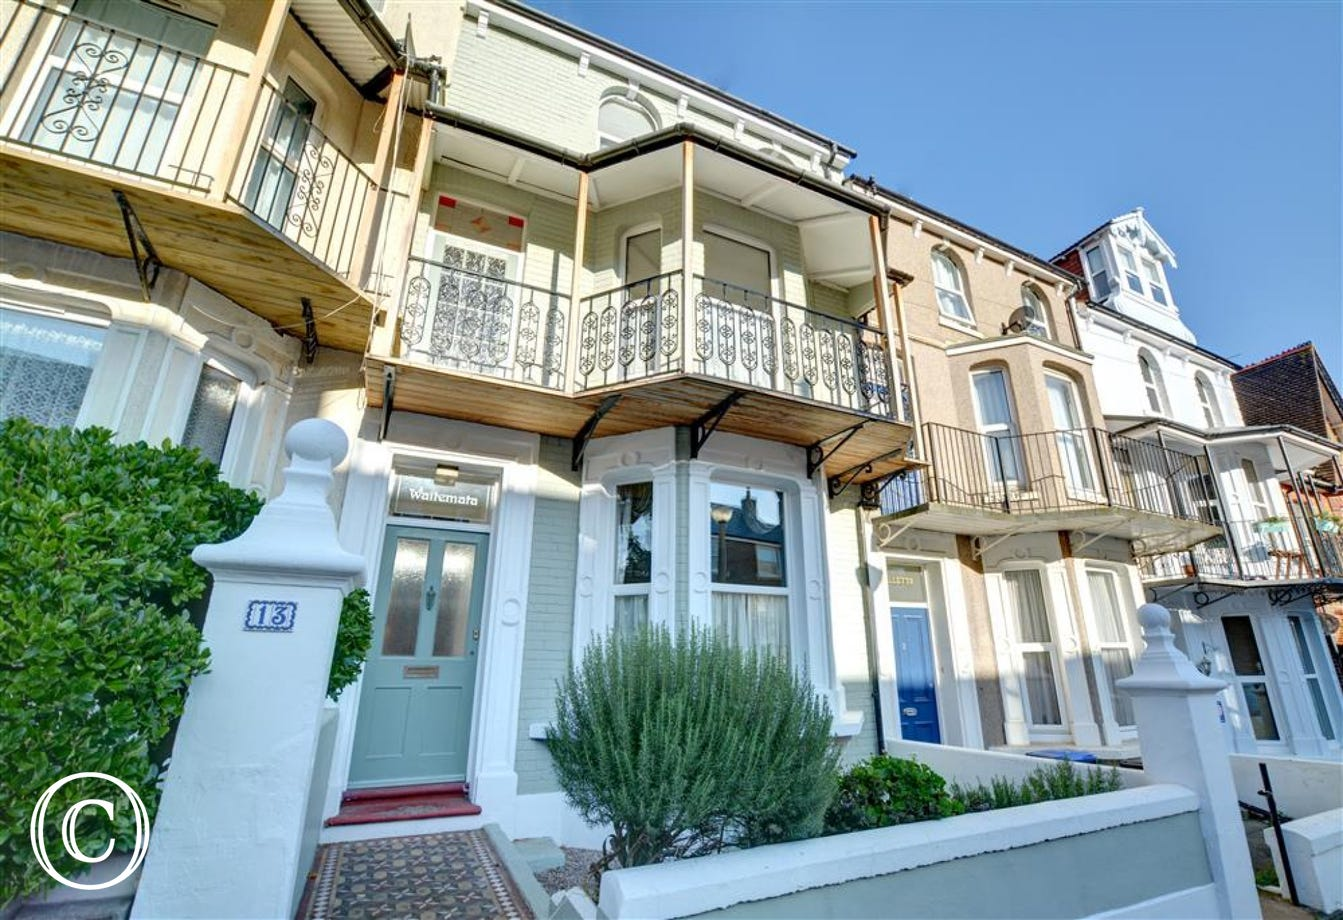 Wonderful Victorian town house within walking distance to the seafront in Ramsgate